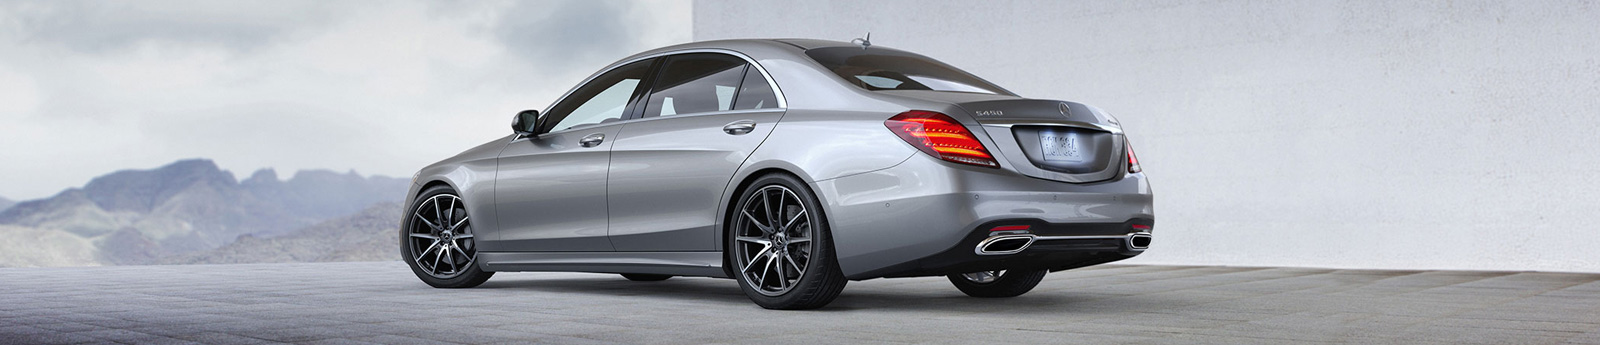 Mercedes-Benz S Class model